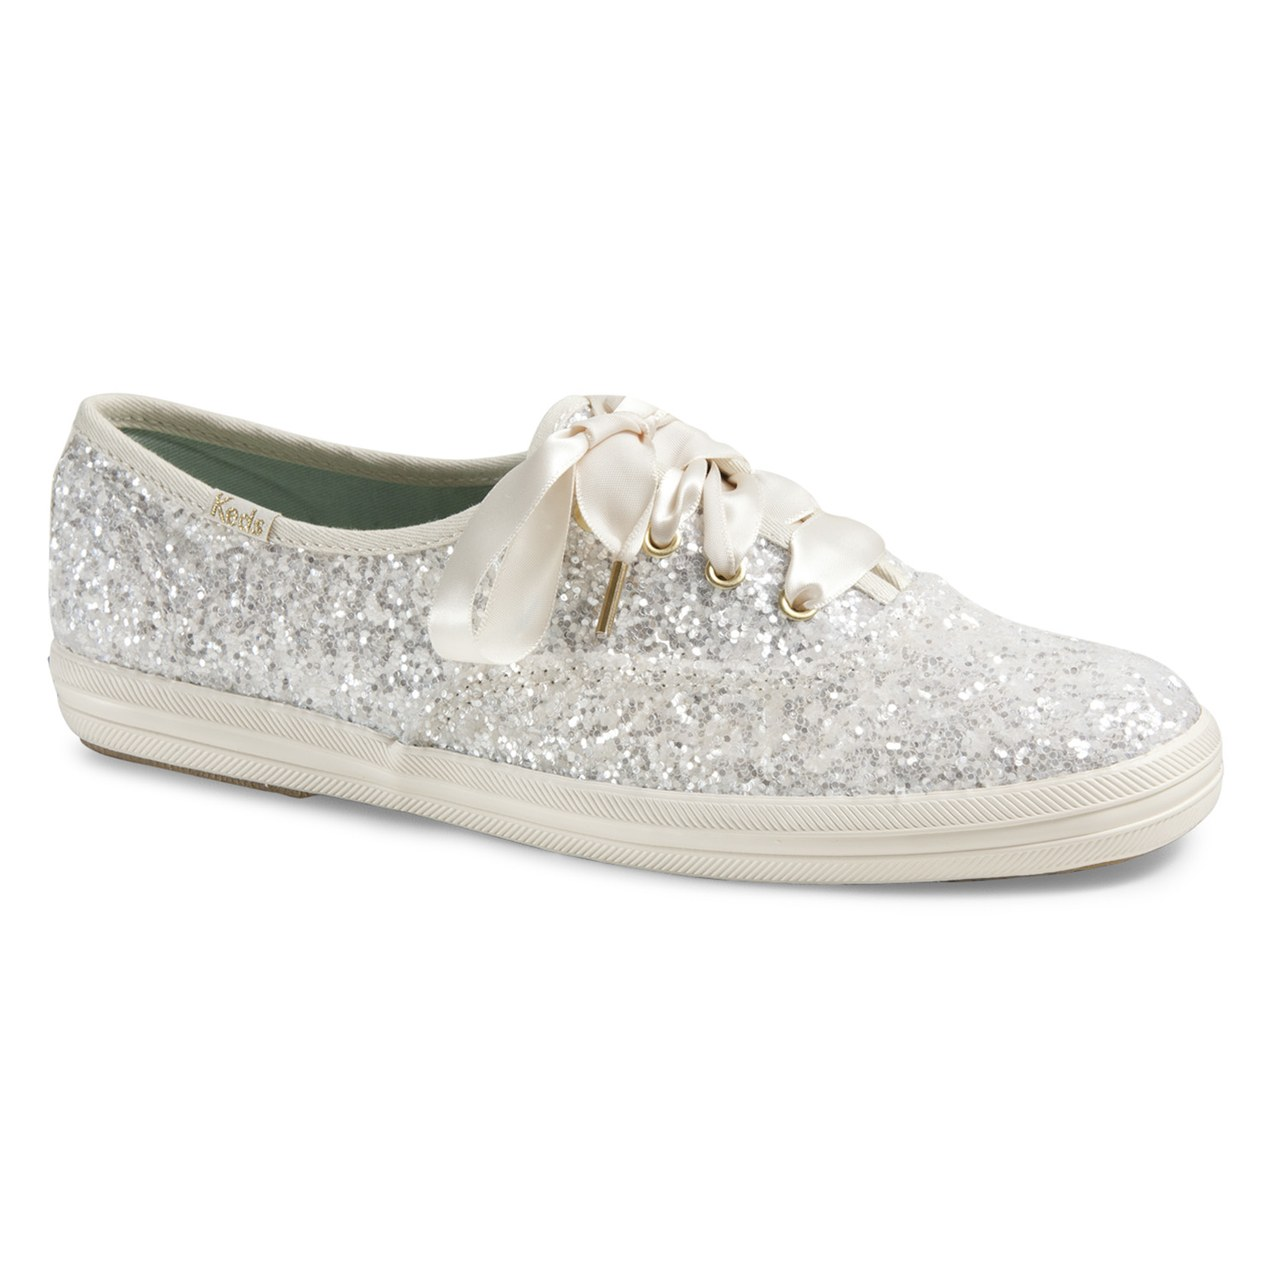 9723da049b20 Kate Spade New York and Keds Made the Bridal Sneakers You ll Want to Wear  on Your Wedding Day